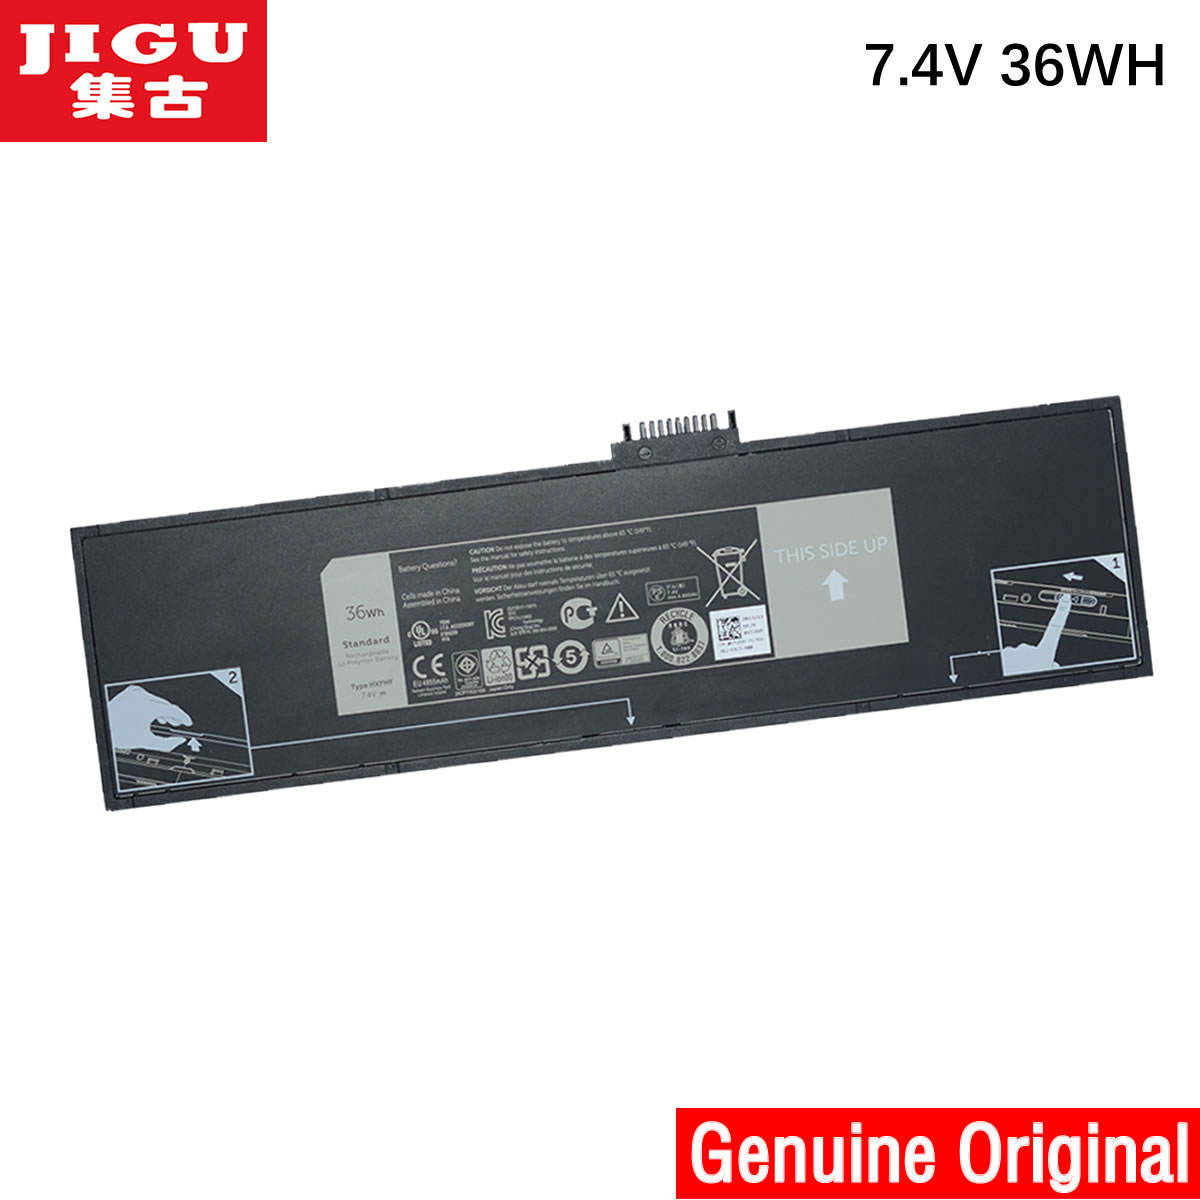 JIGU HXFHF Original Laptop <font><b>Battery</b></font> For <font><b>DELL</b></font> Venue 11 Pro (7130) 11 Pro (7139) 11 Pro <font><b>7140</b></font> image